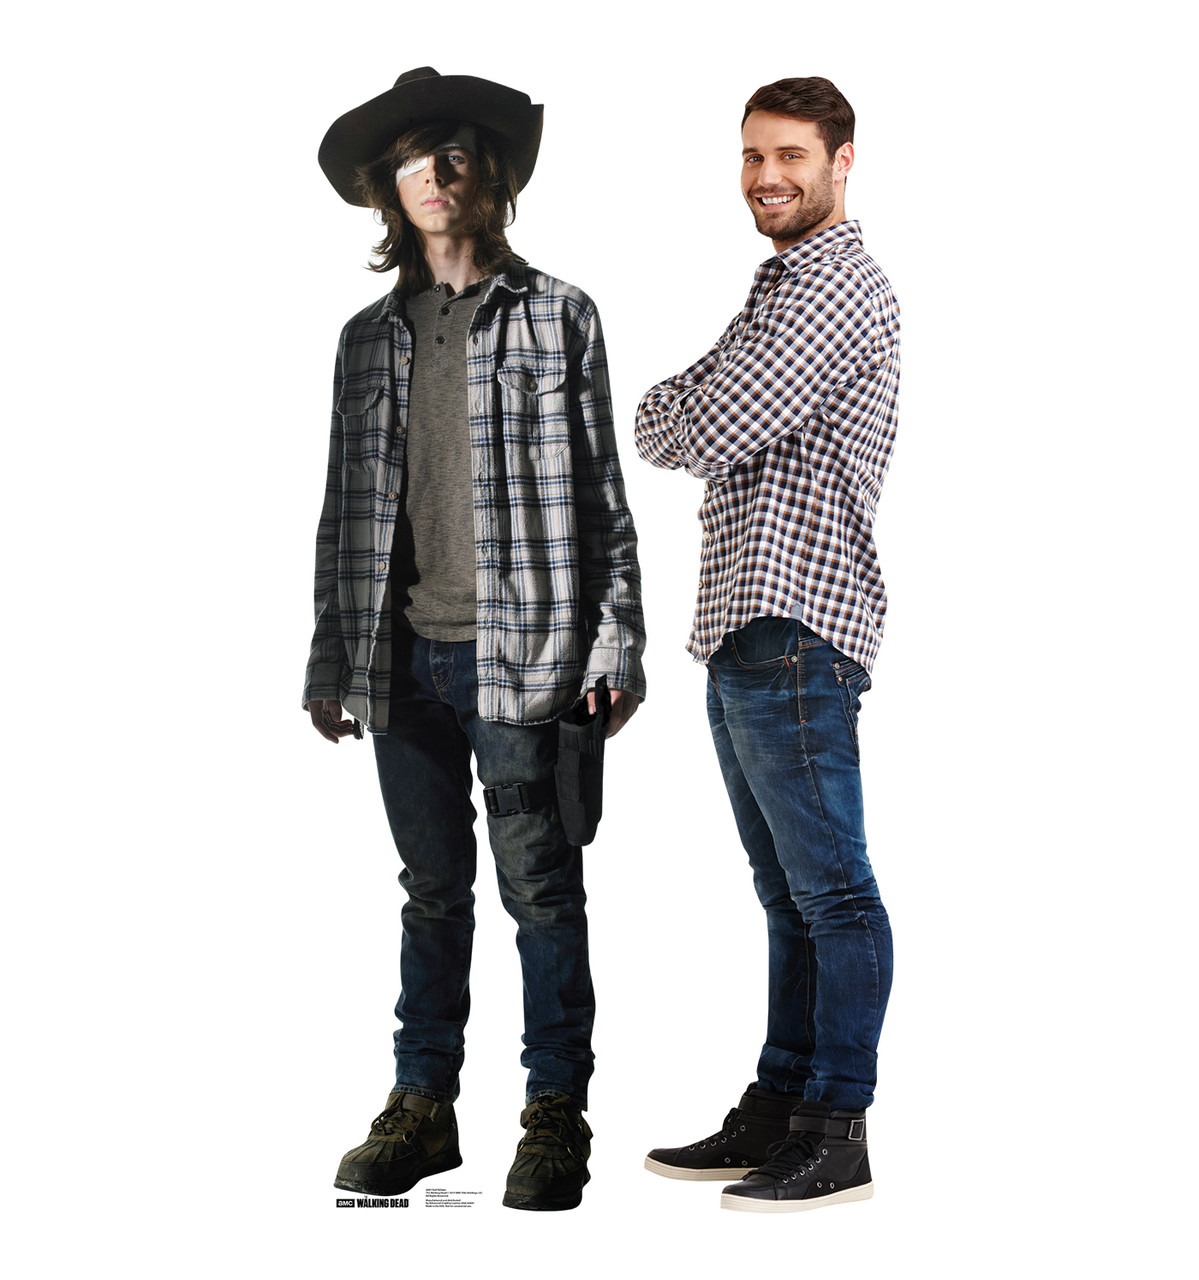 Life-size Carl Grimes (The Walking Dead) Cardboard Standup 2